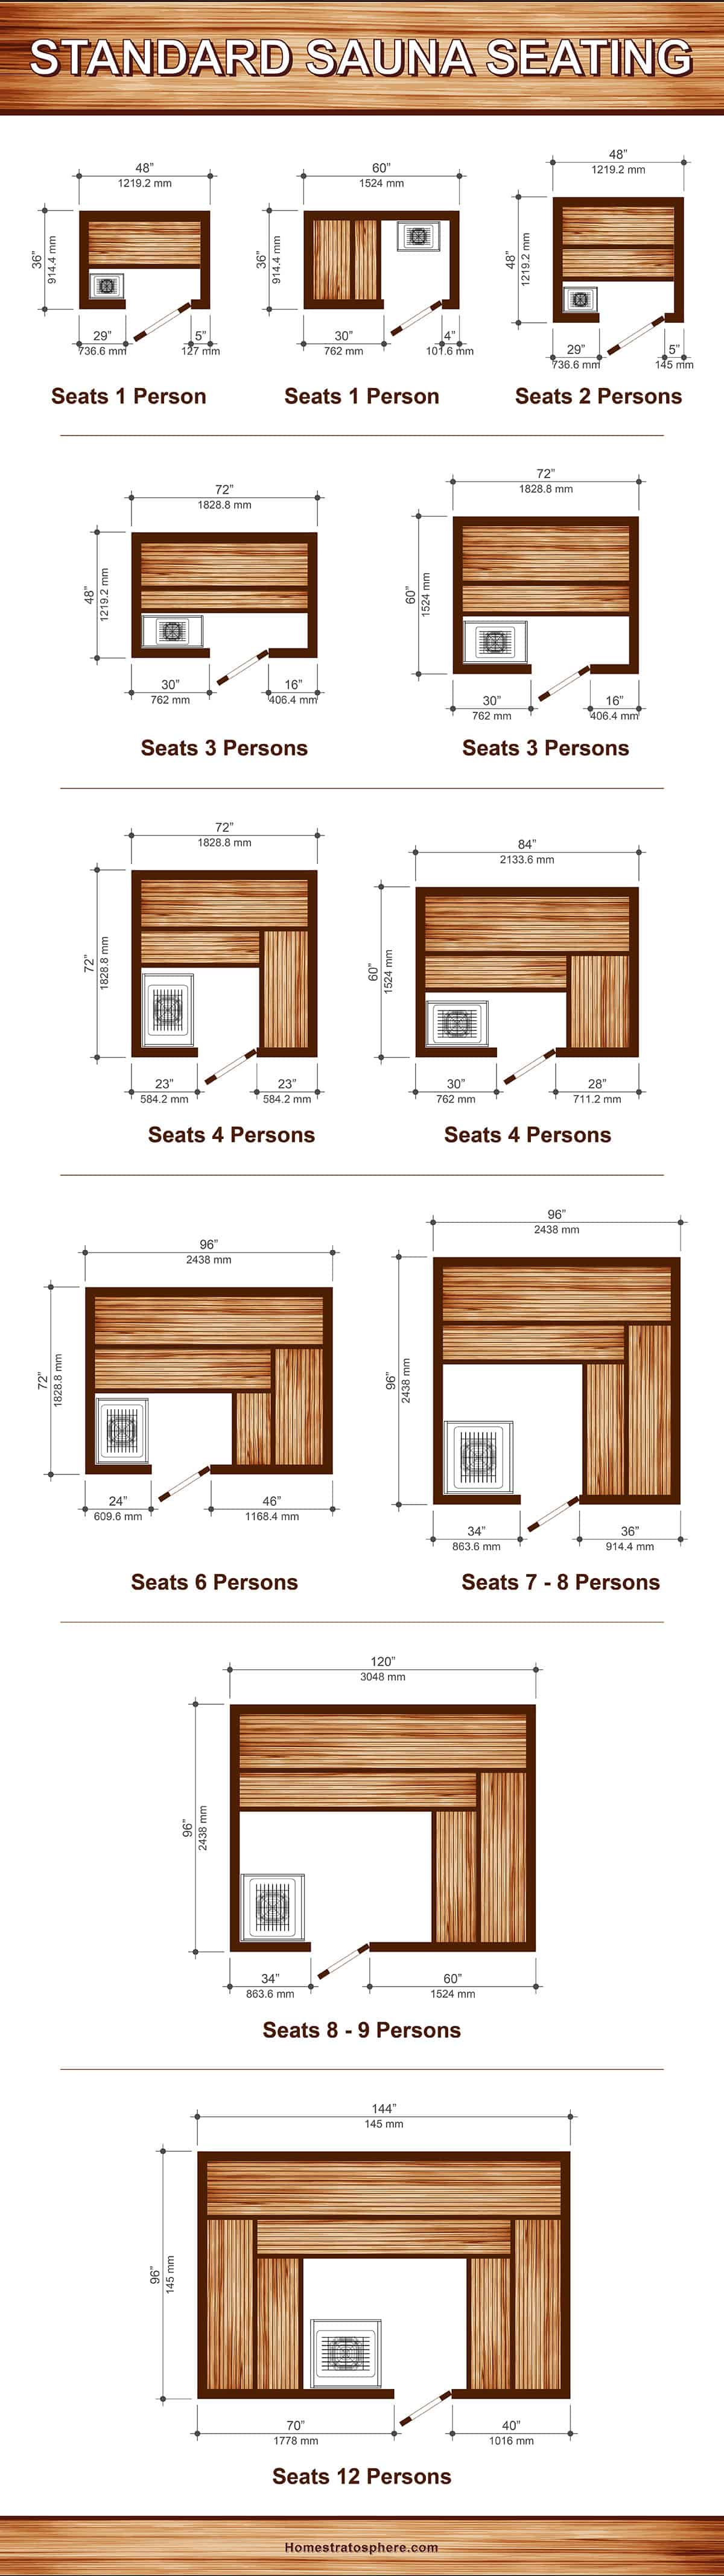 Diagram setting out 11 different sauna dimensions (layouts) and sizes for different number of people.